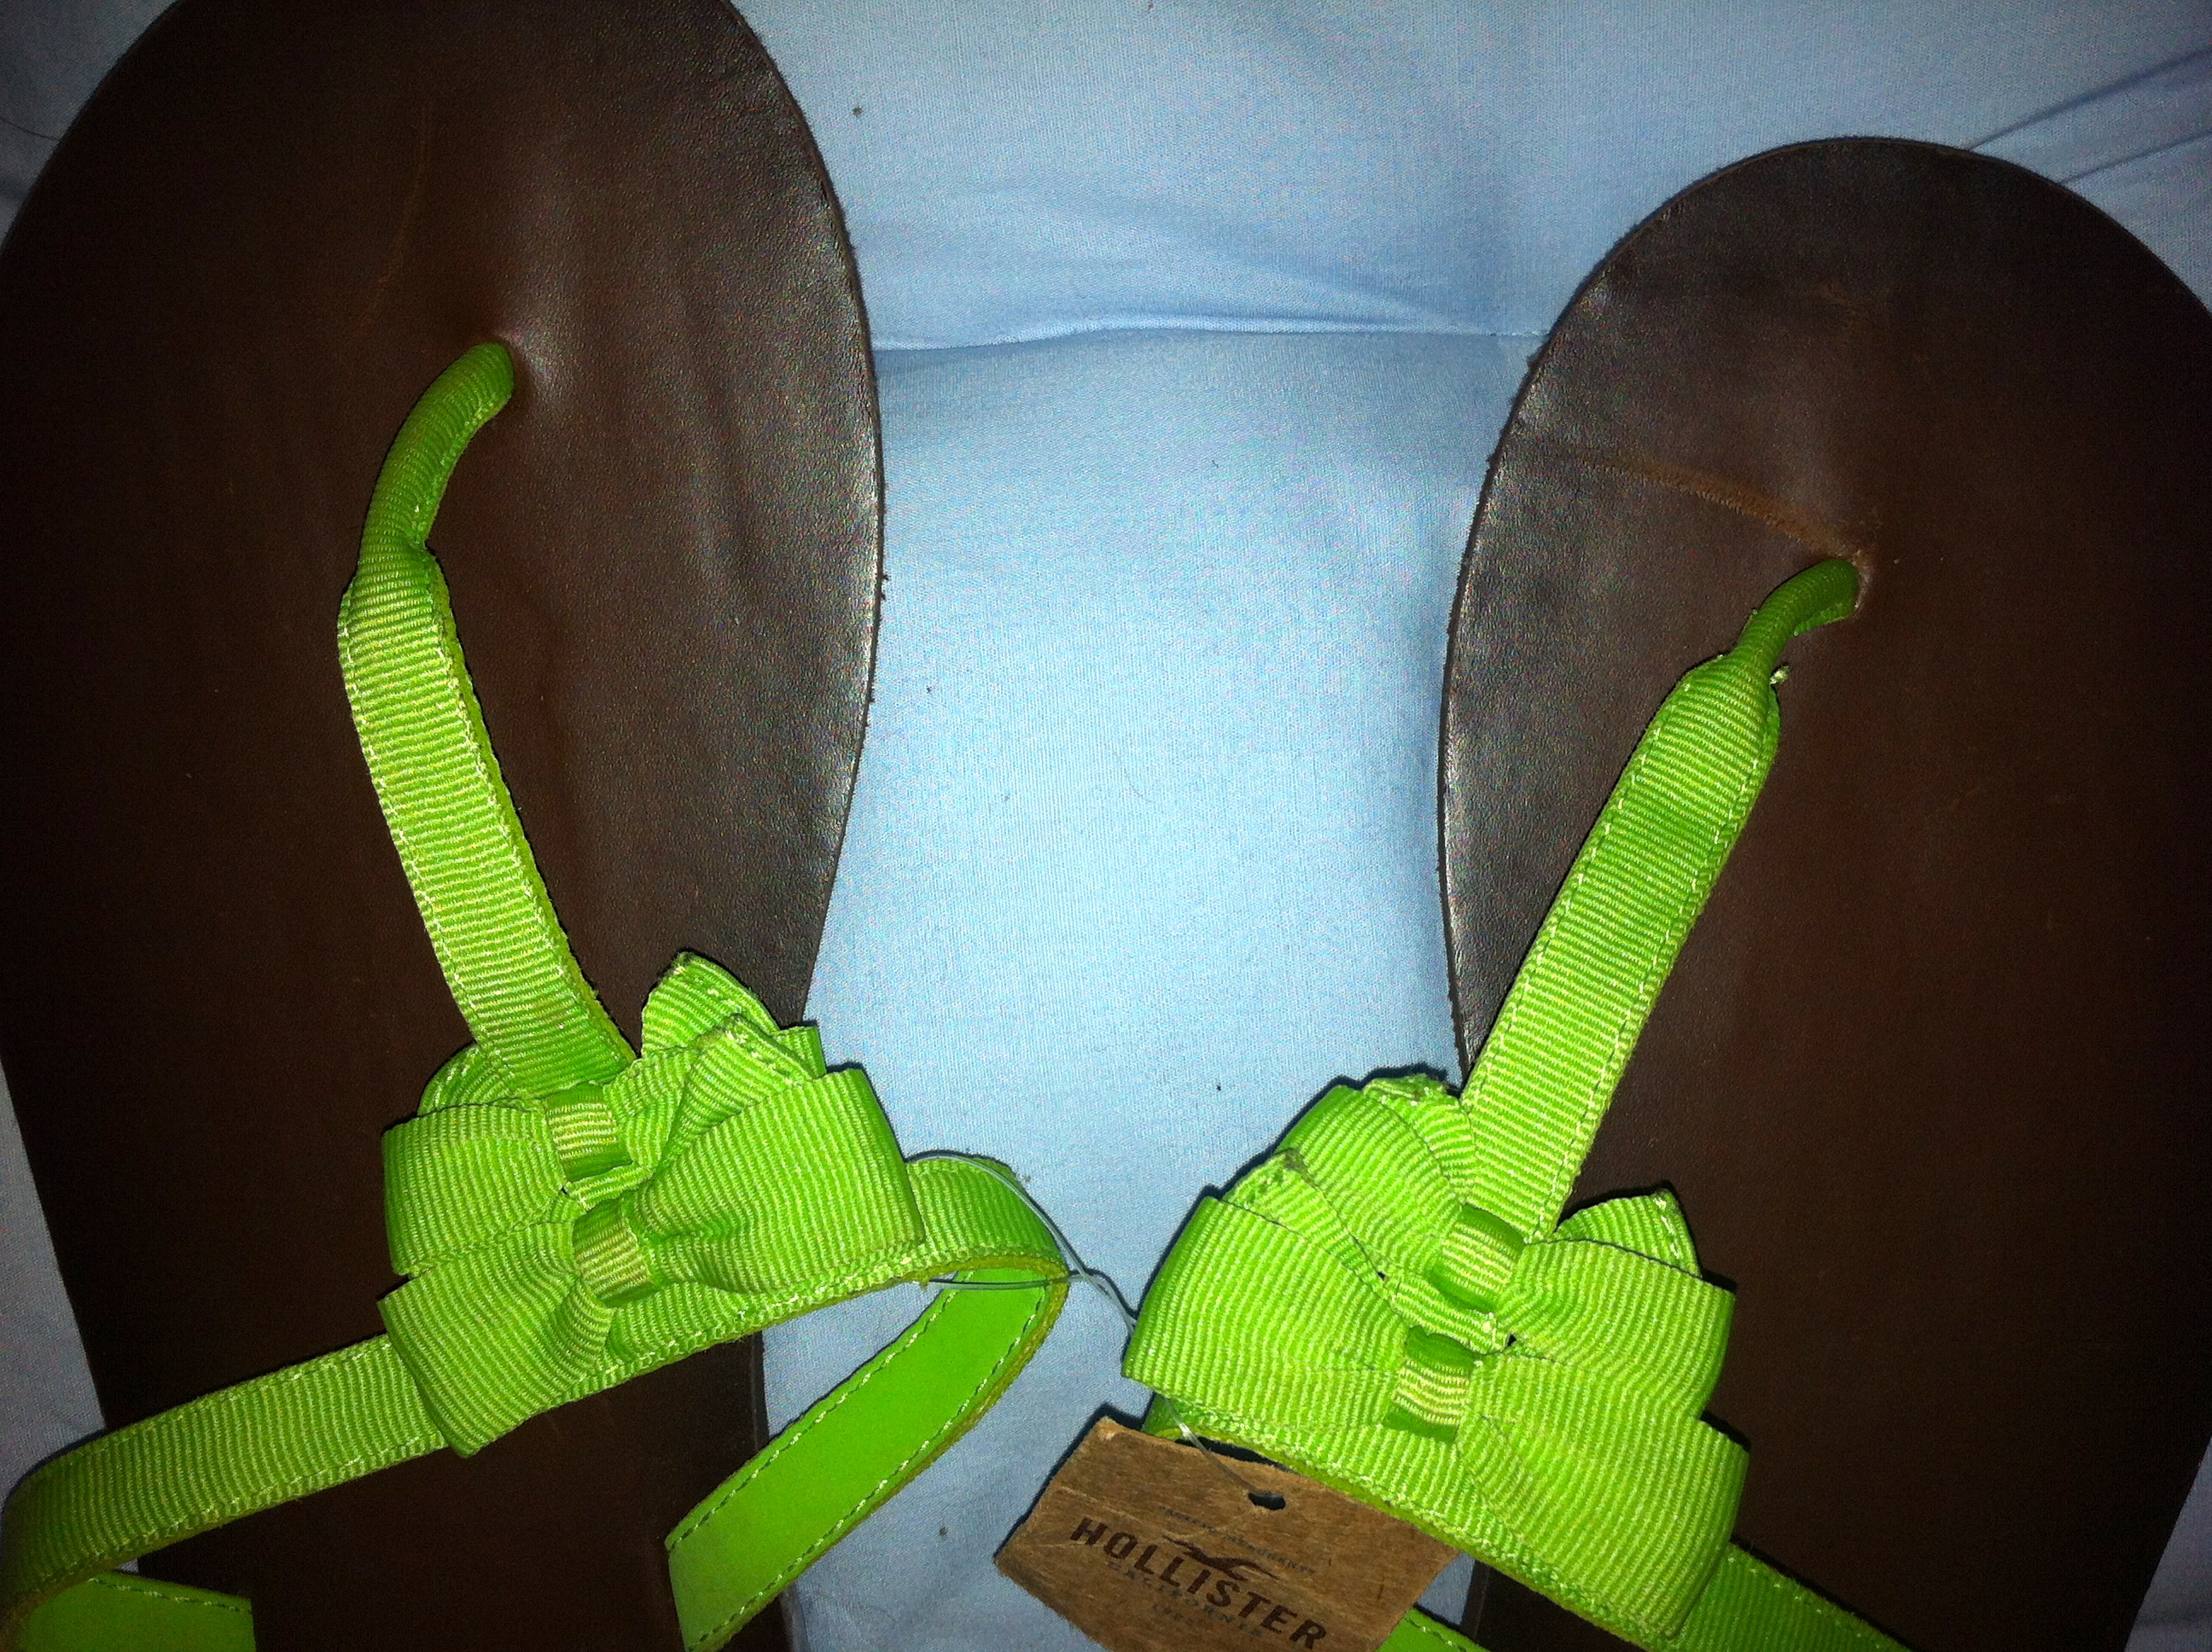 e22b3a863 ... Hollister by Abercrombie Fitch Women Leather Flip Flop Green M 8 9 -  Thumbnail ...